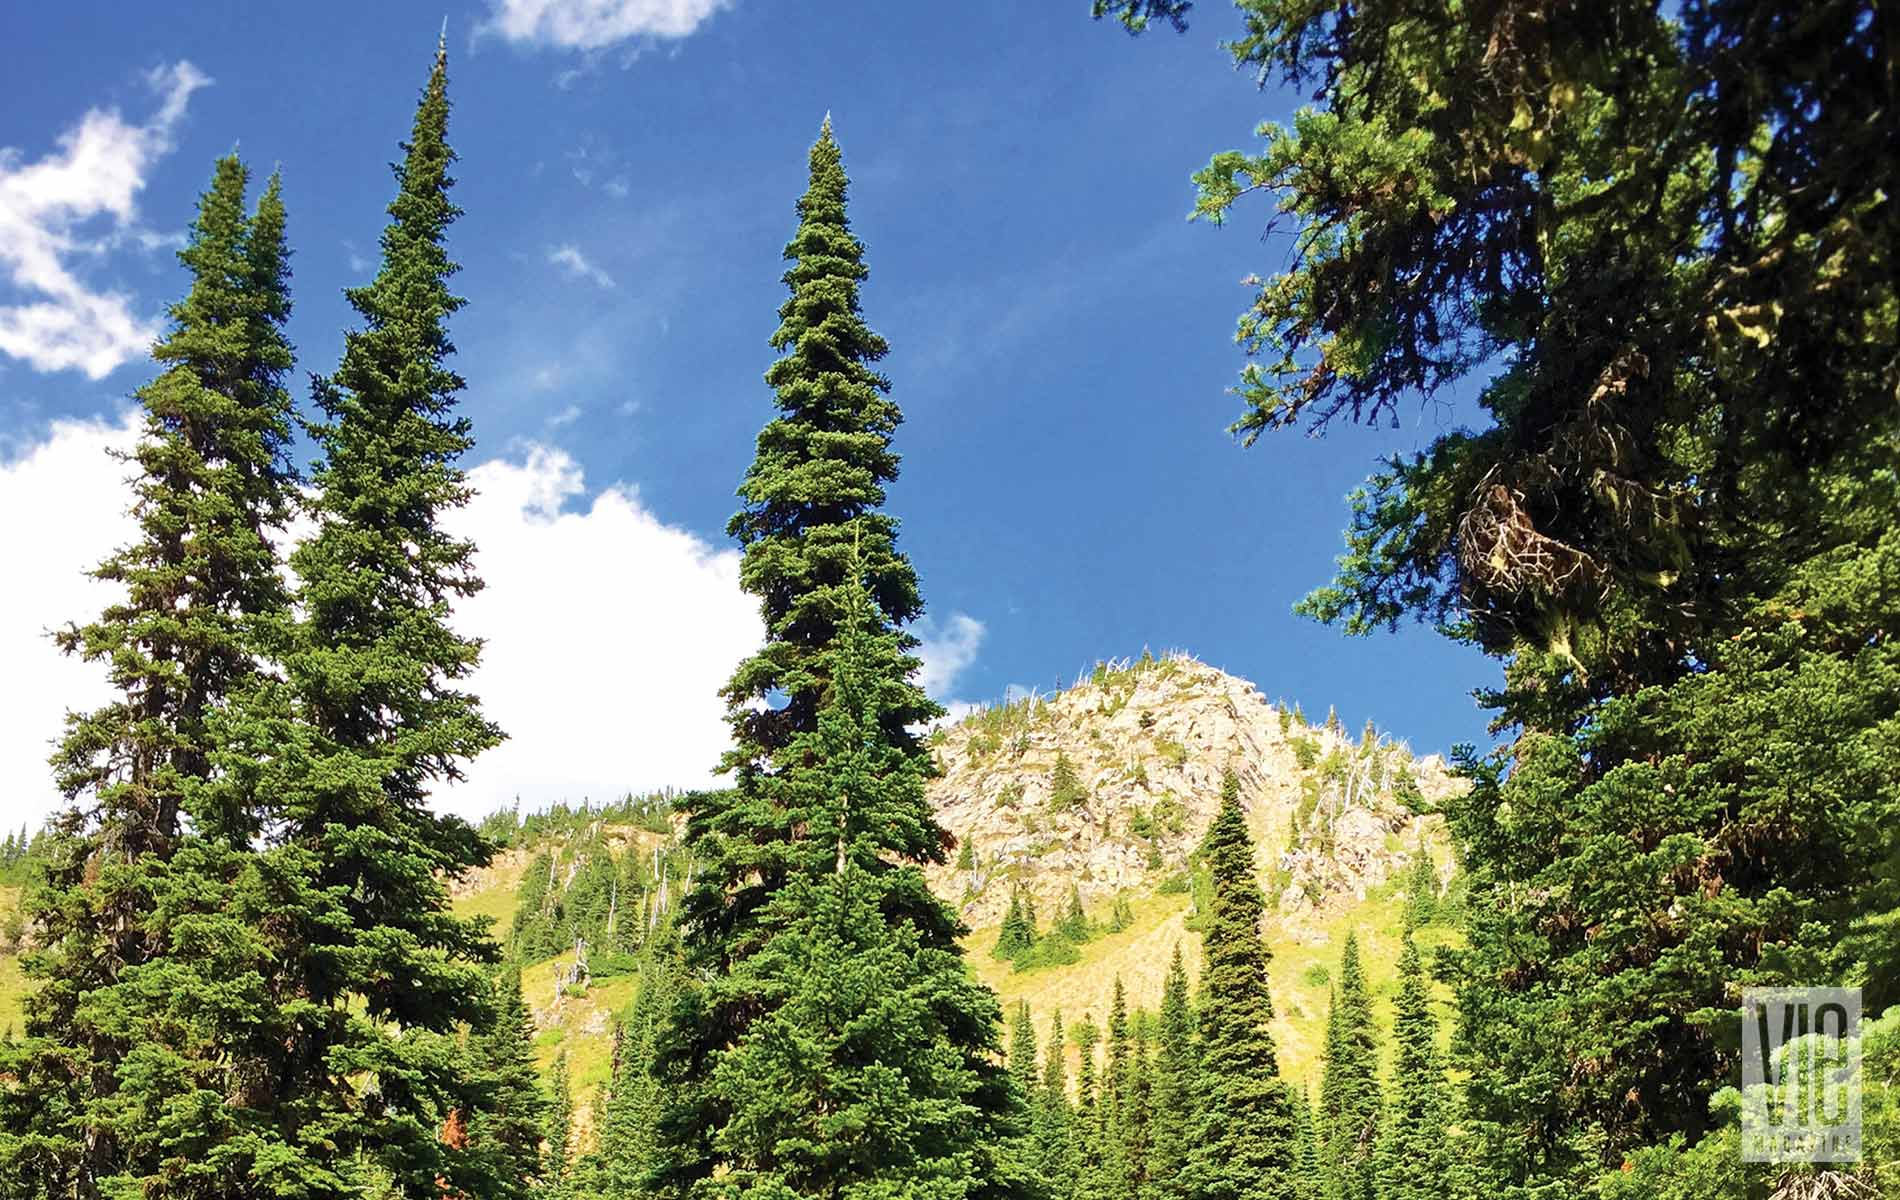 Trees and mountains in Montana Jewel Basin